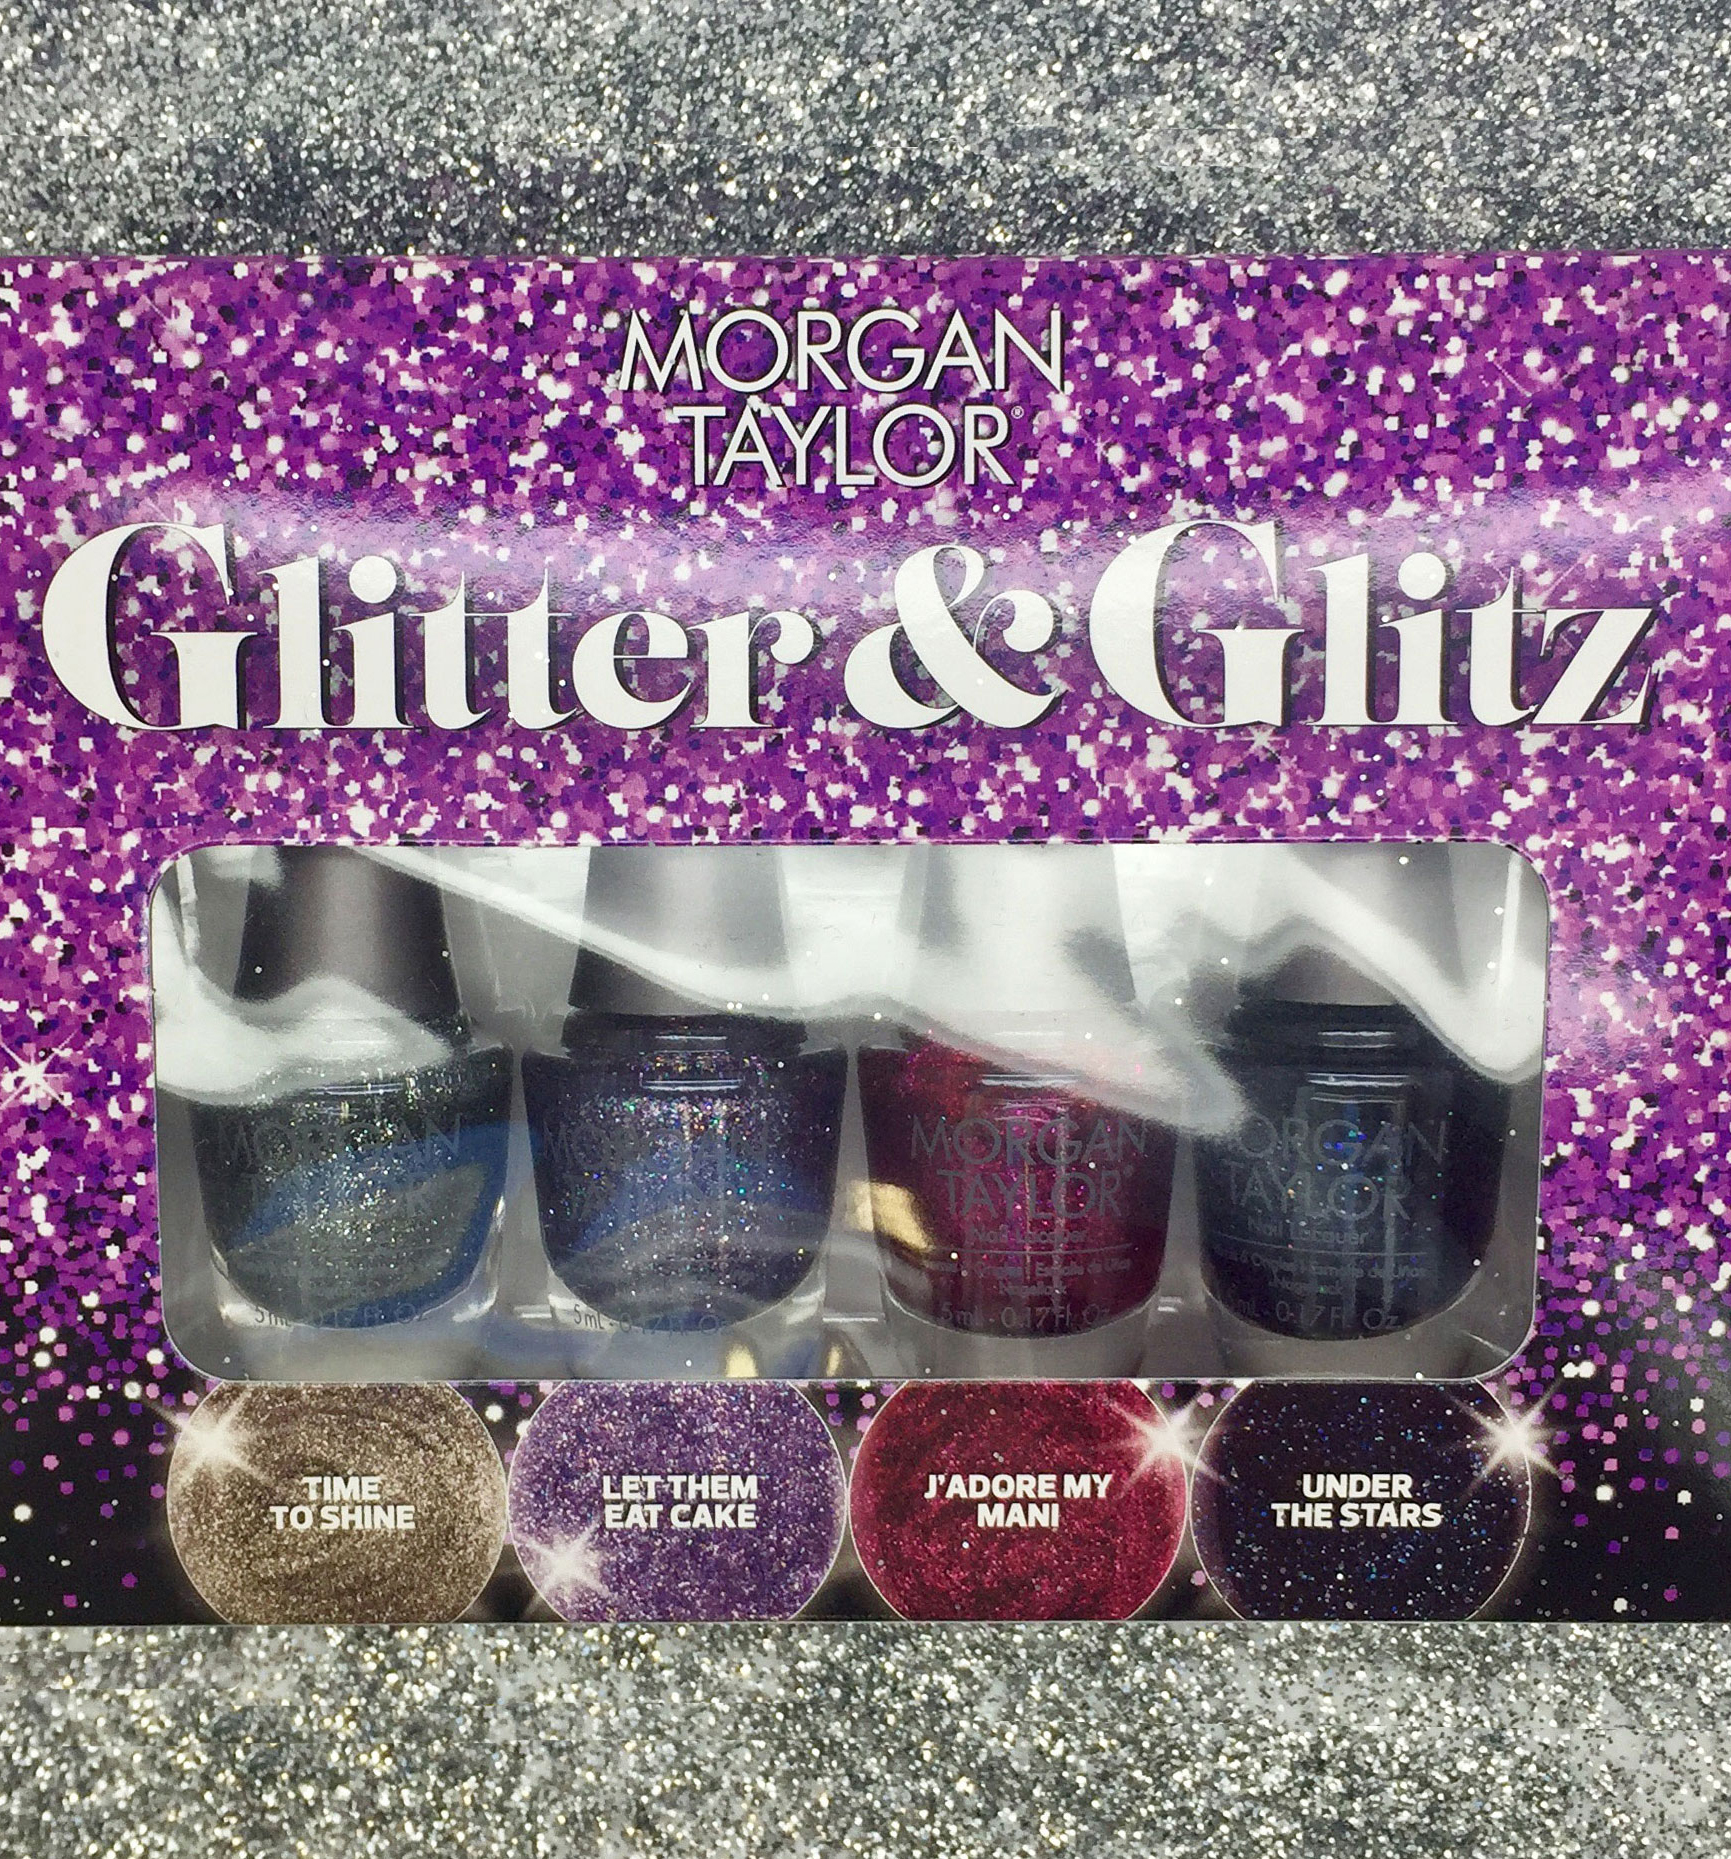 Give The Gift Of Glamour This Christmas With Morgan Taylor's Gift Sets!